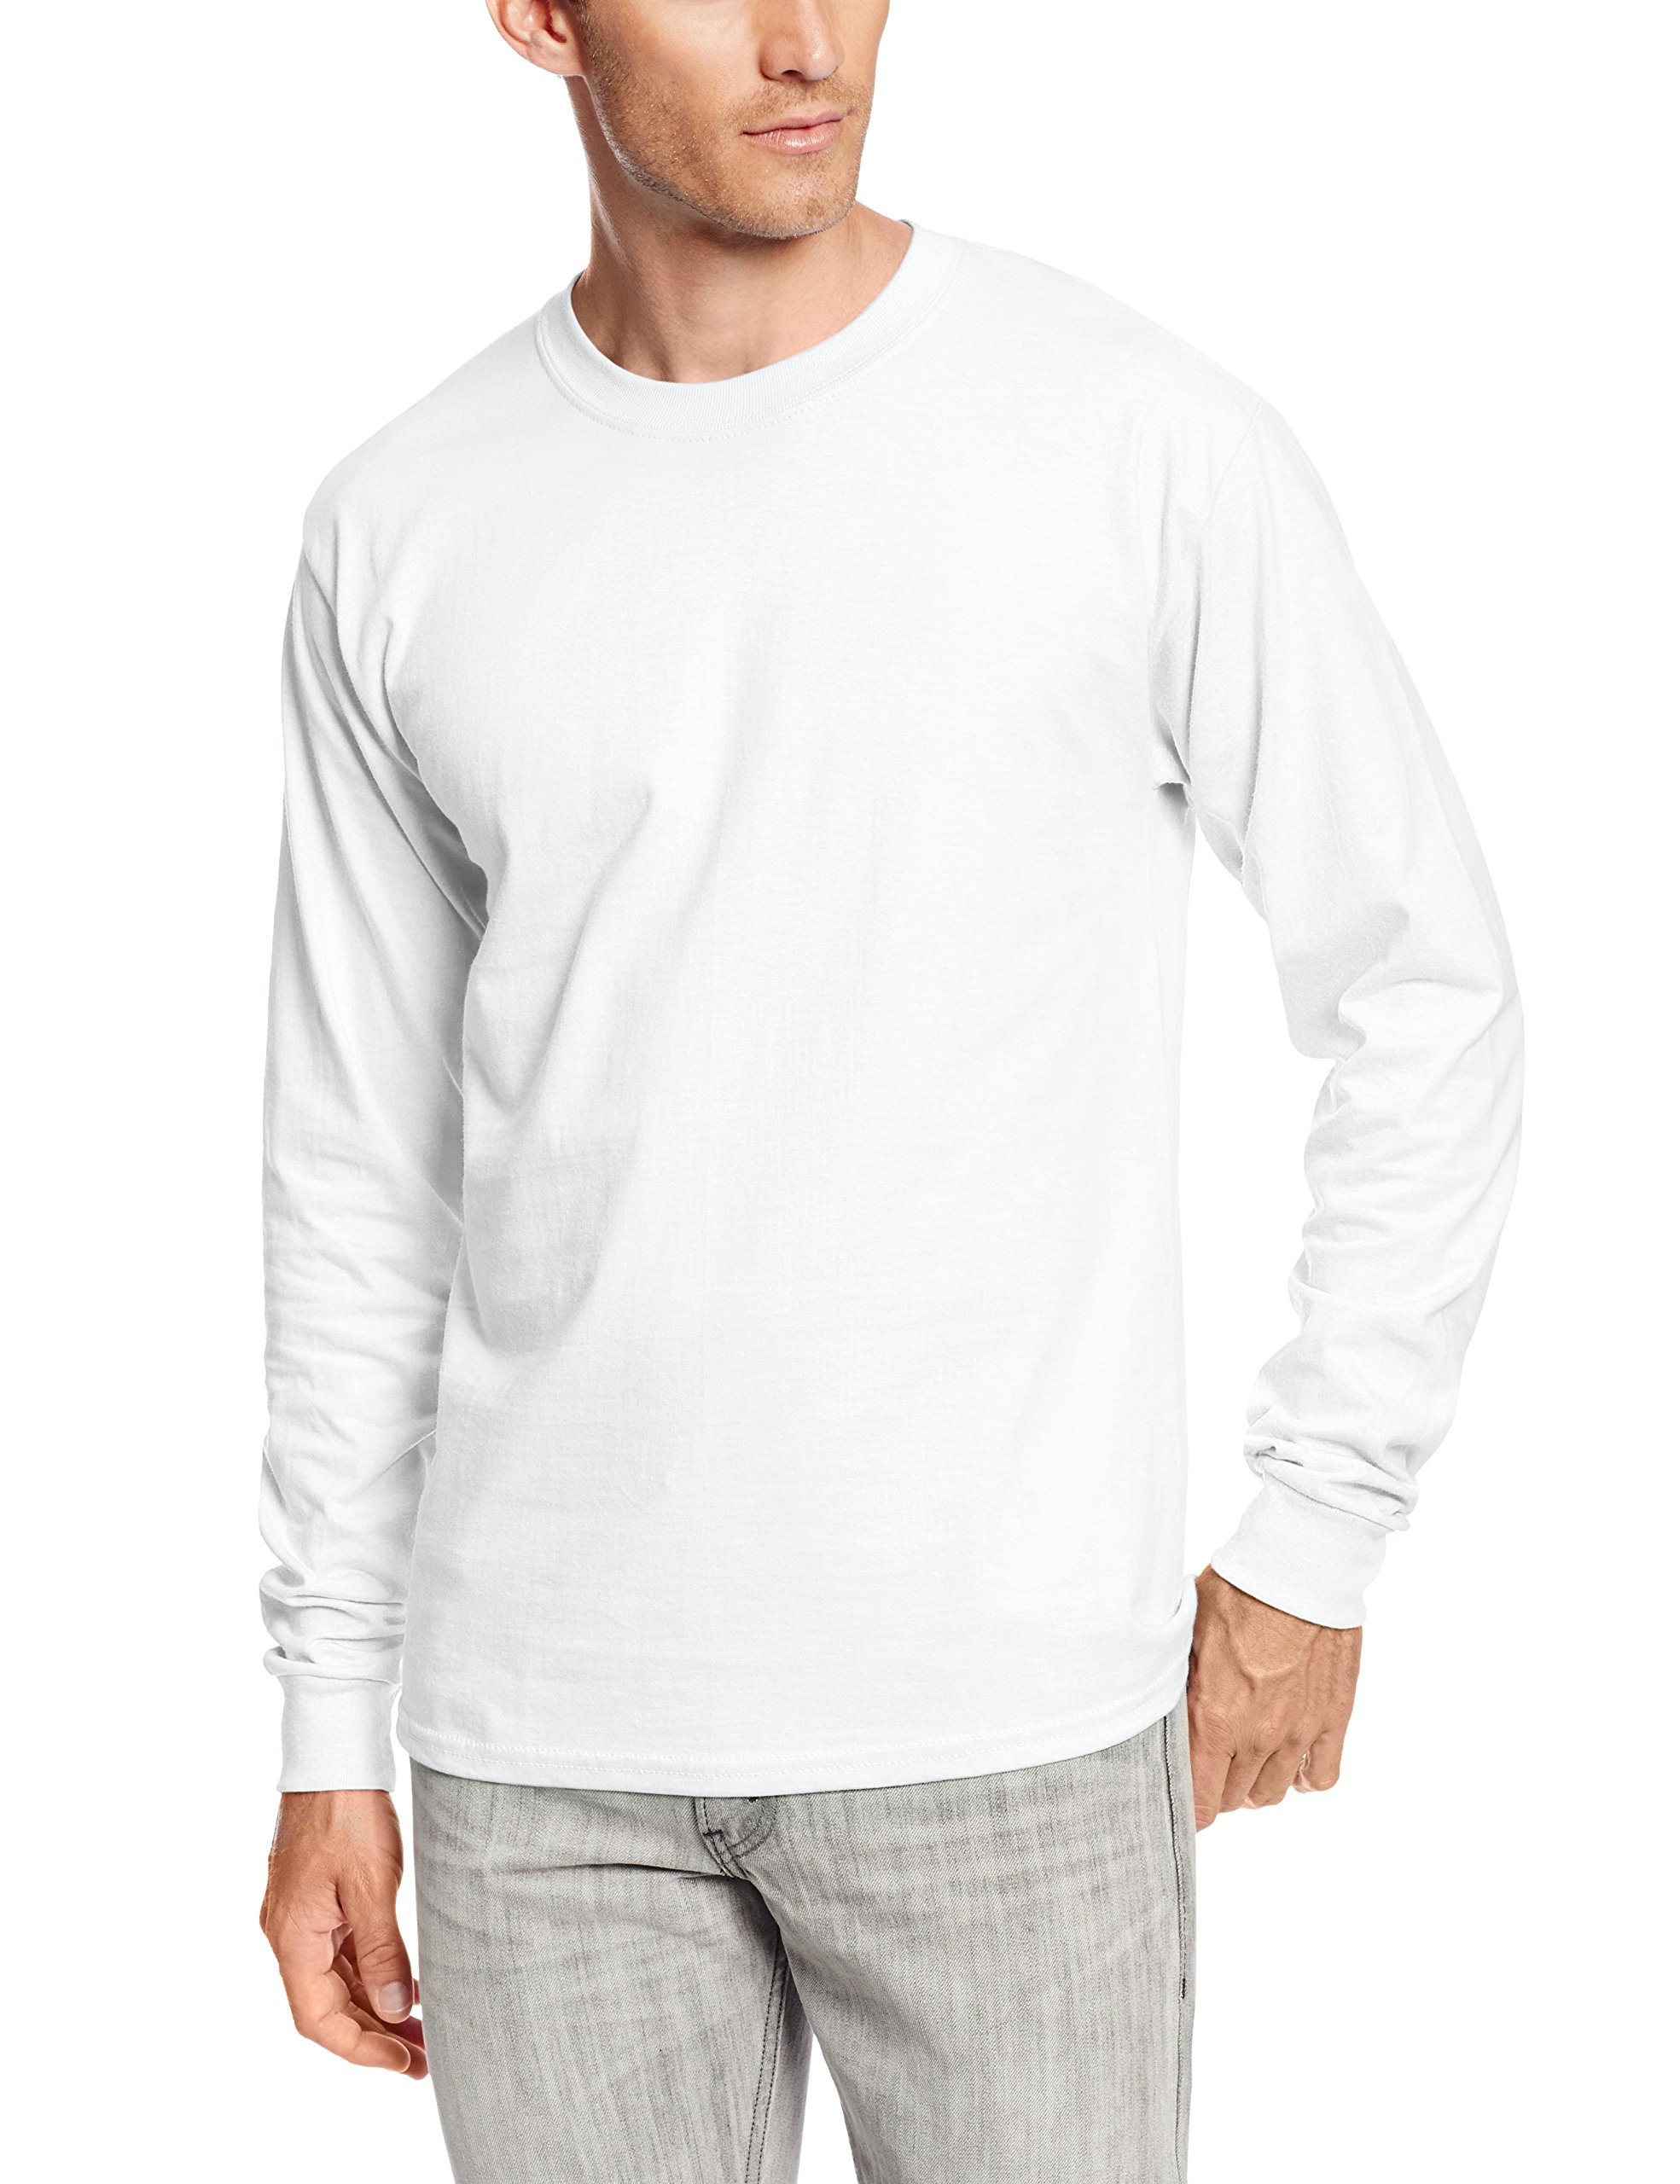 Hanes Men's Long Sleeve Beefy-T Shirt, White, Large (Pack of 2)